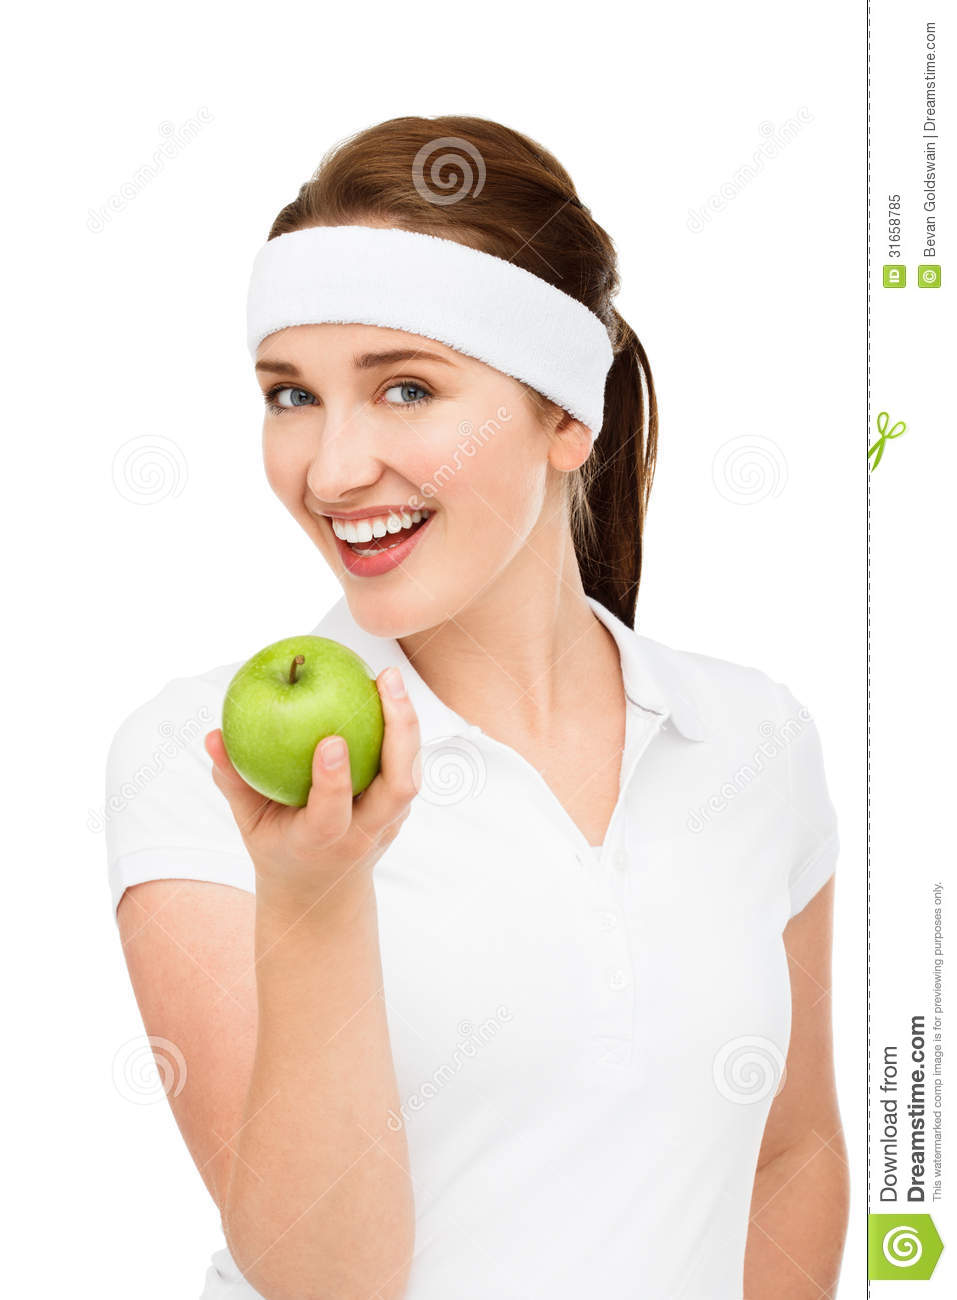 High key Portrait young woman holding green apple isolated on white background